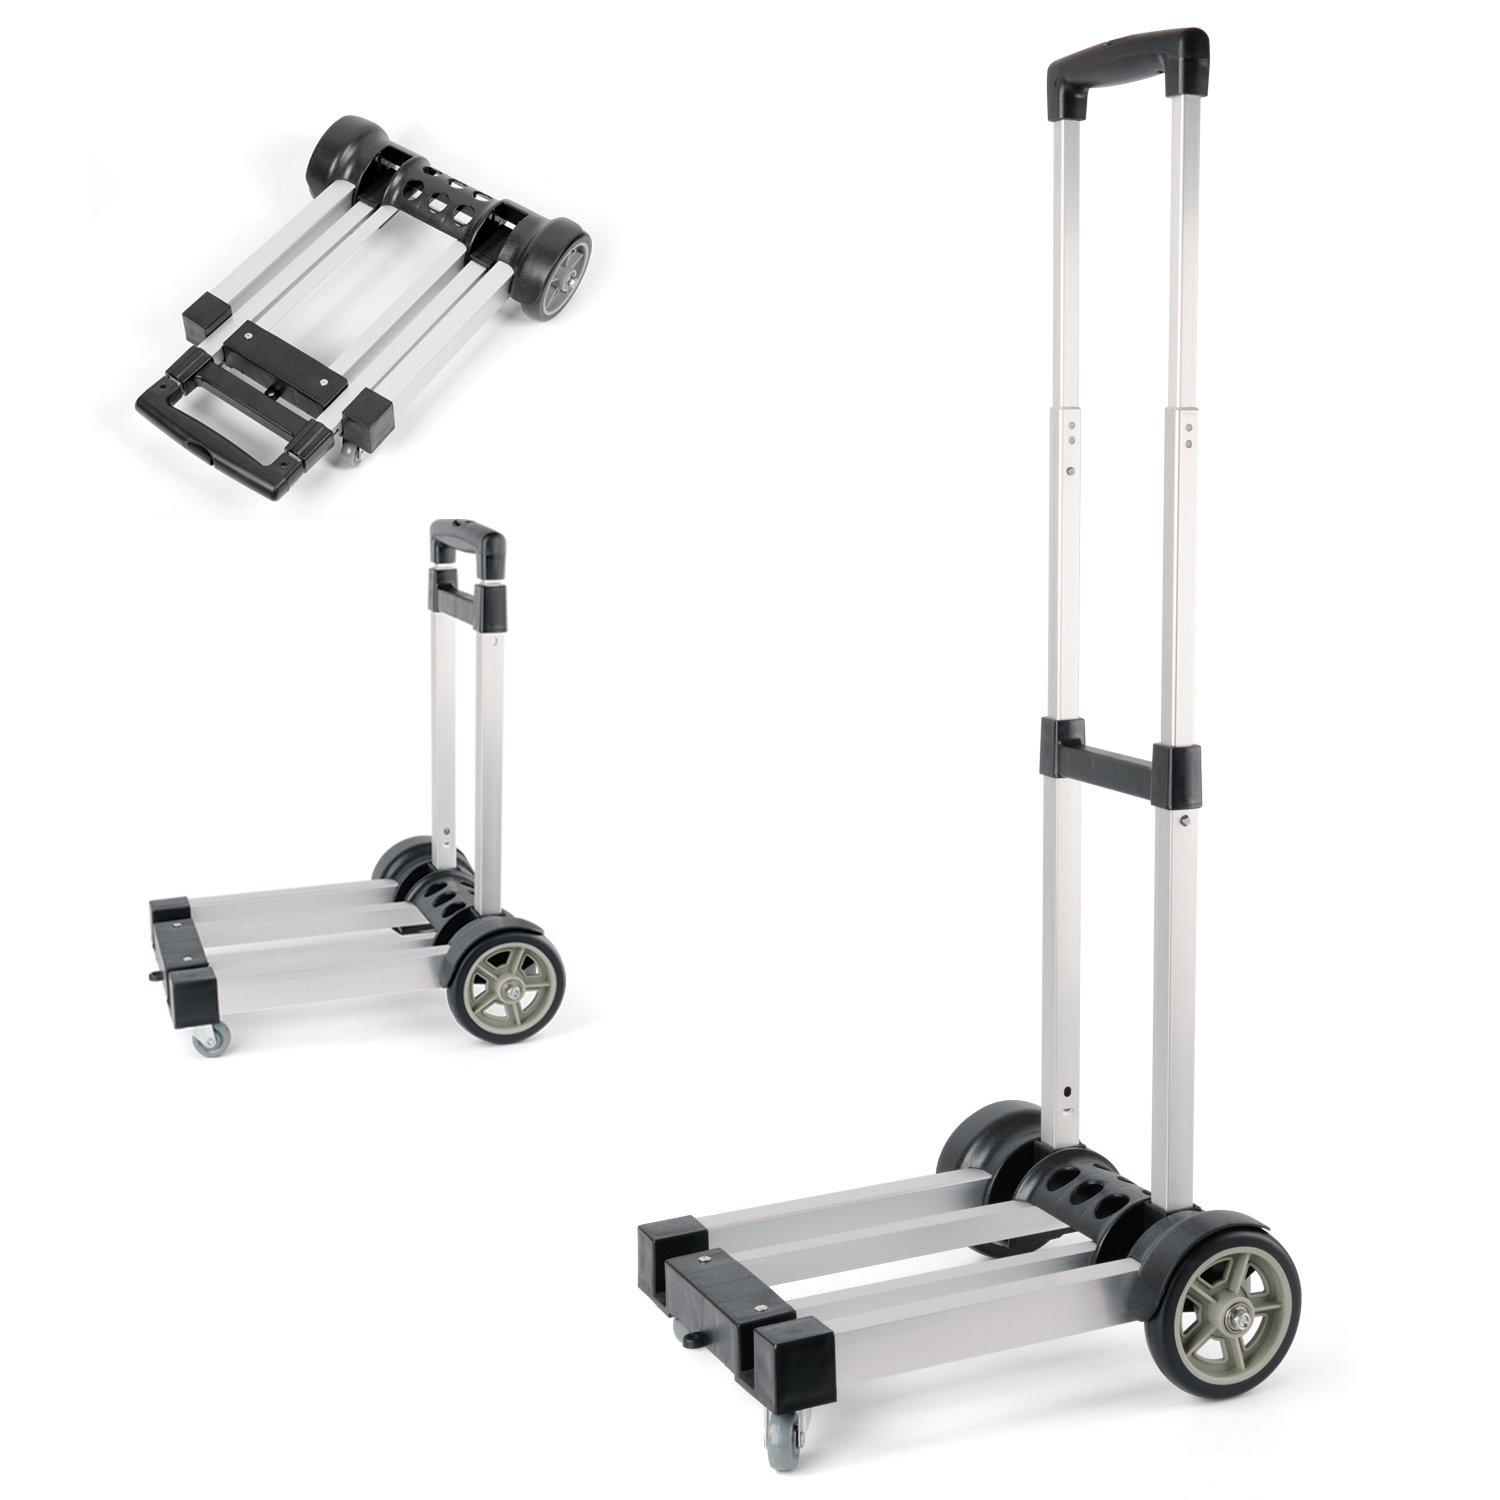 Waygo Aluminum Folding Hand Truck, Light Weight Foldable Dolly, Folding Cart with Wheels for Cargo and Shopping